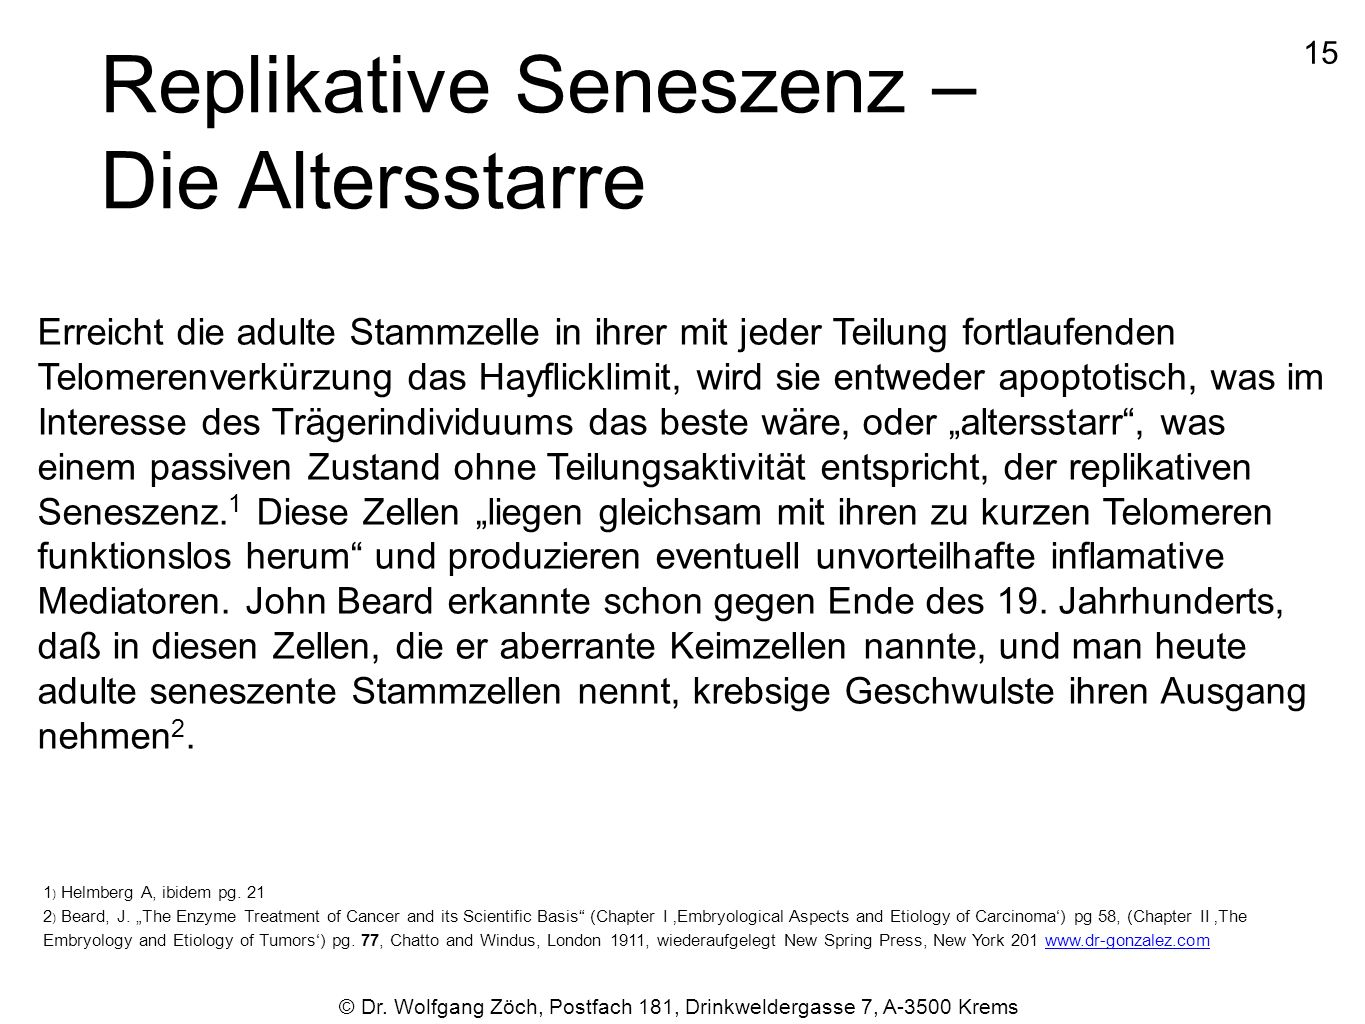 Replikative Seneszenz – Die Altersstarre